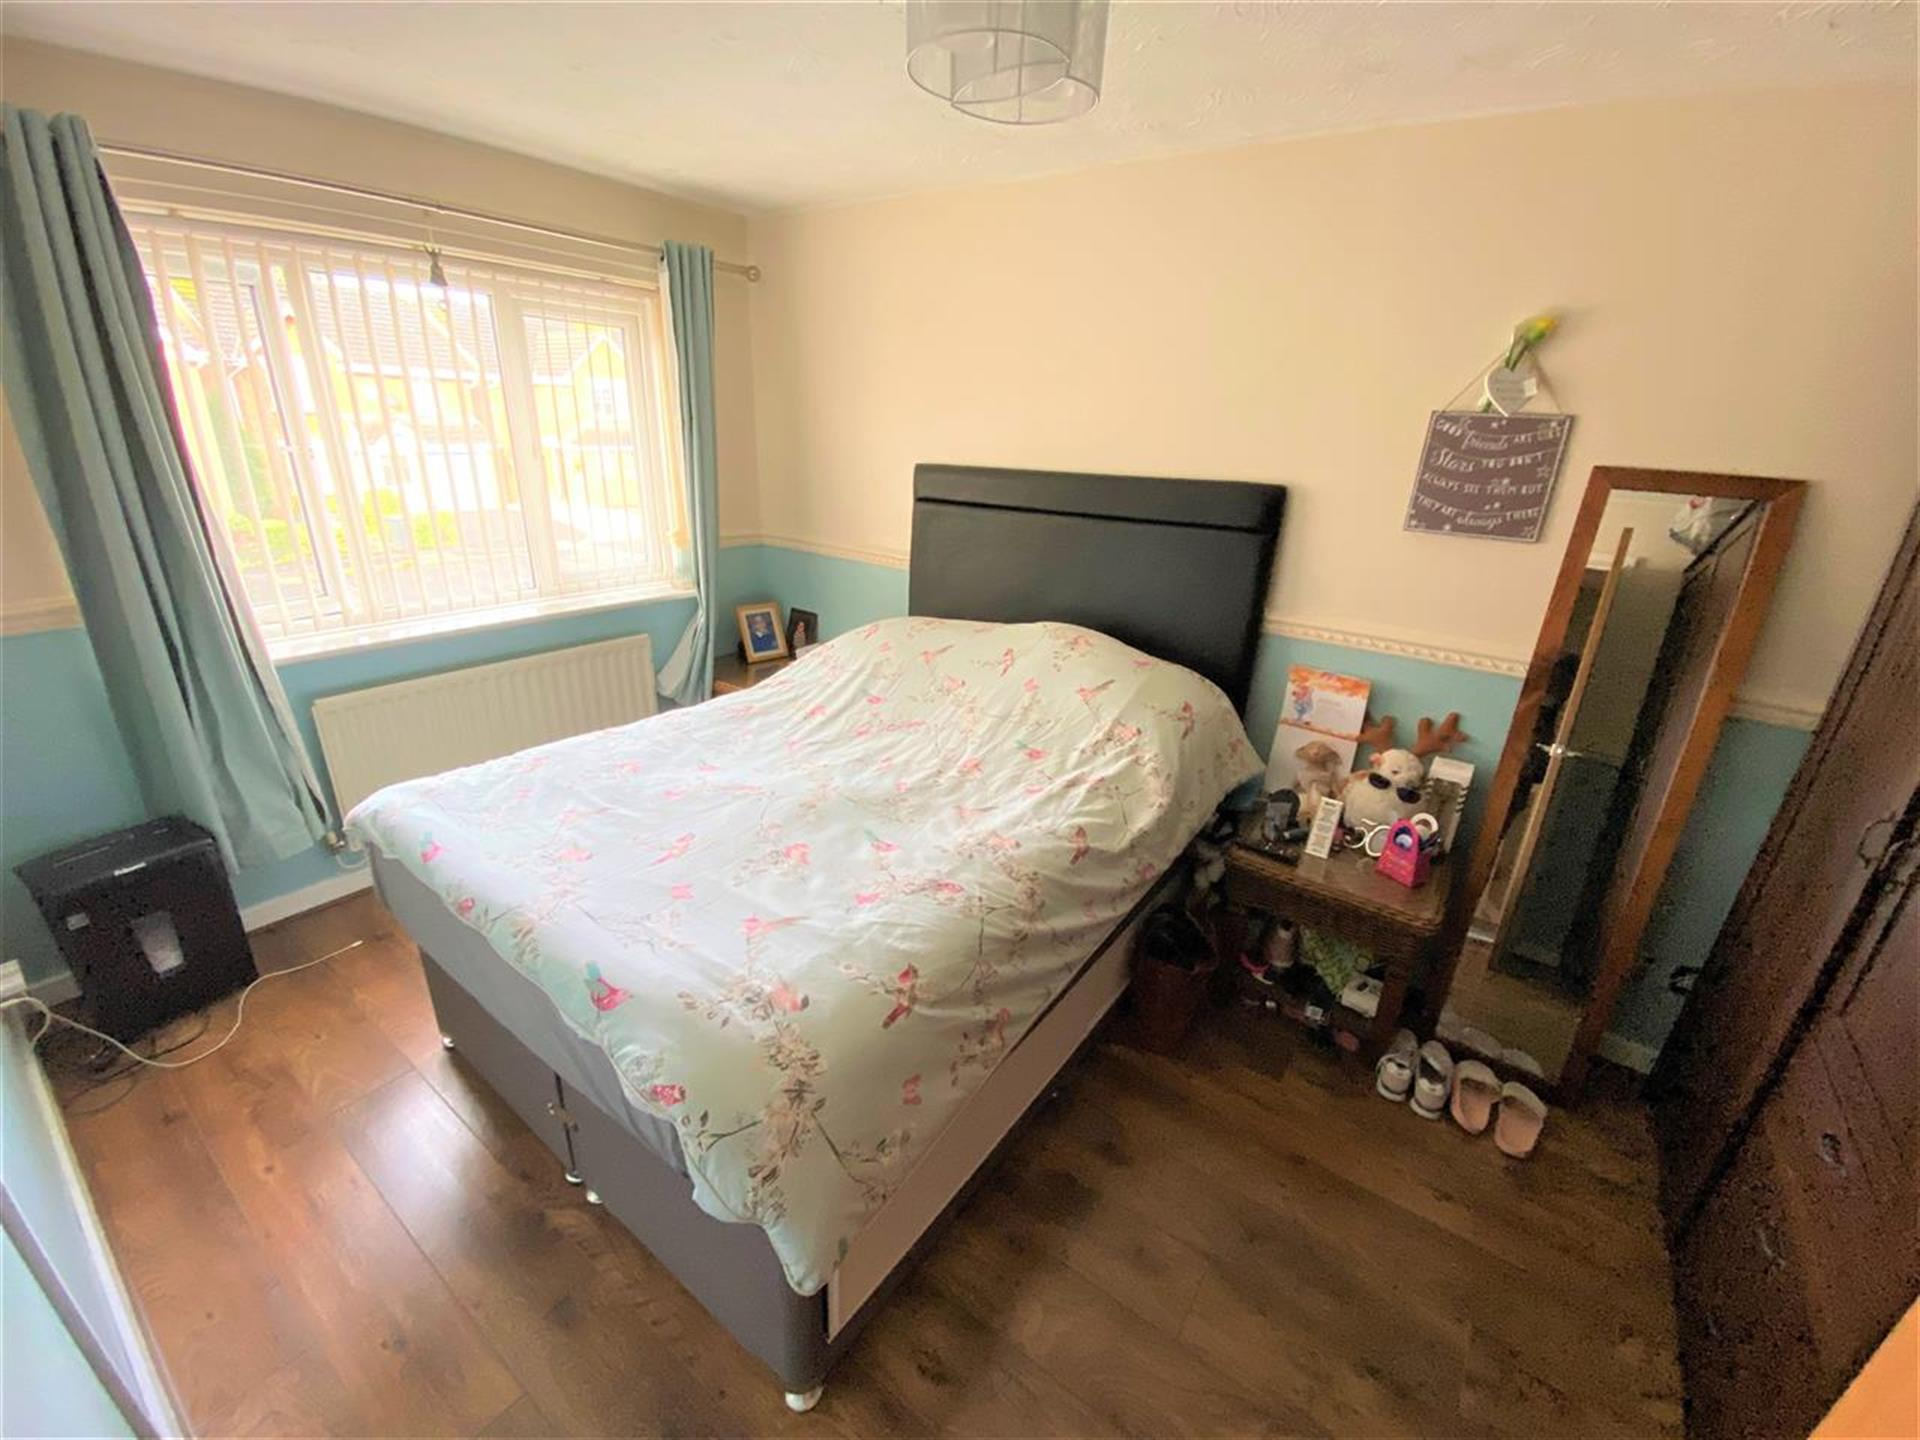 3 Bedroom End Terraced House For Sale - Bedroom One